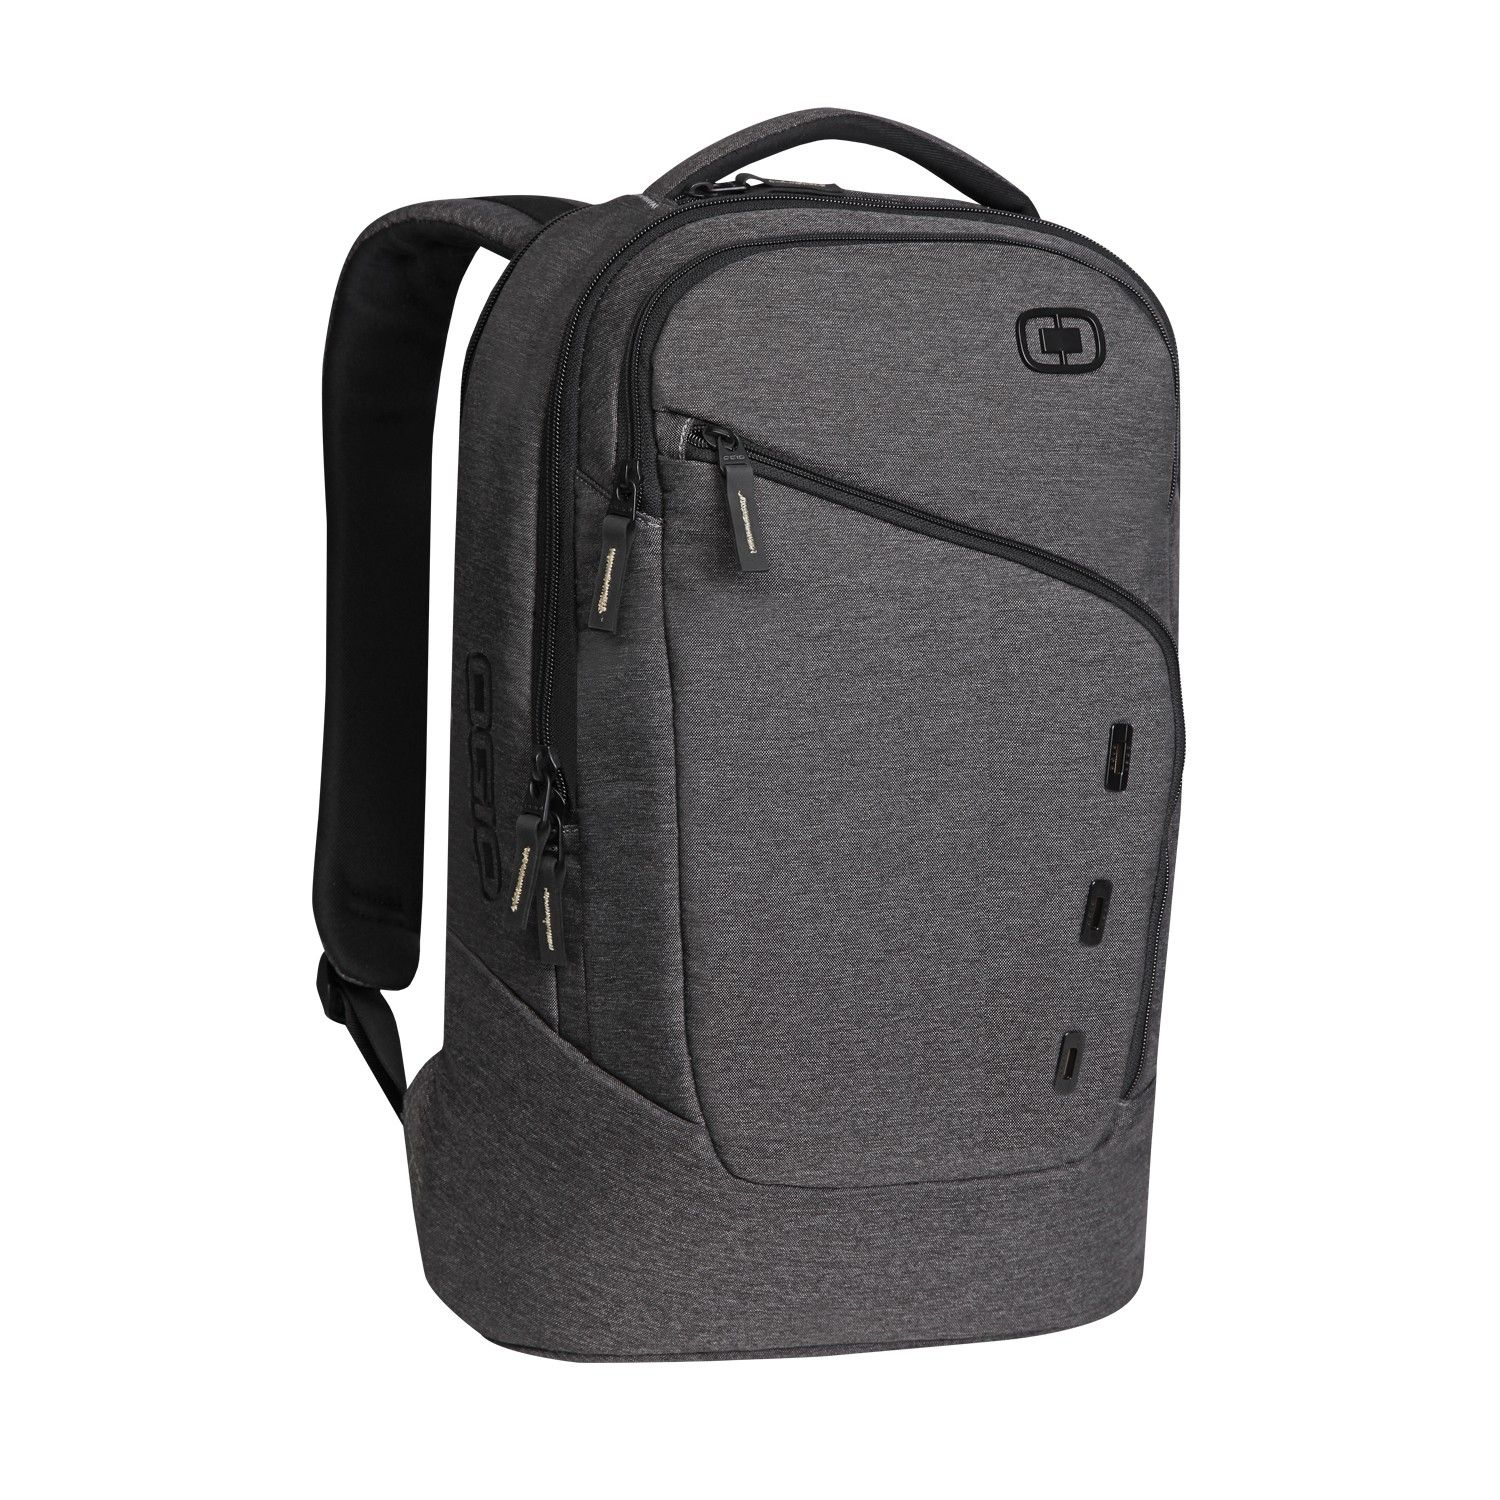 laptop backpack - Recherche Google | Sac à dos | Pinterest ...